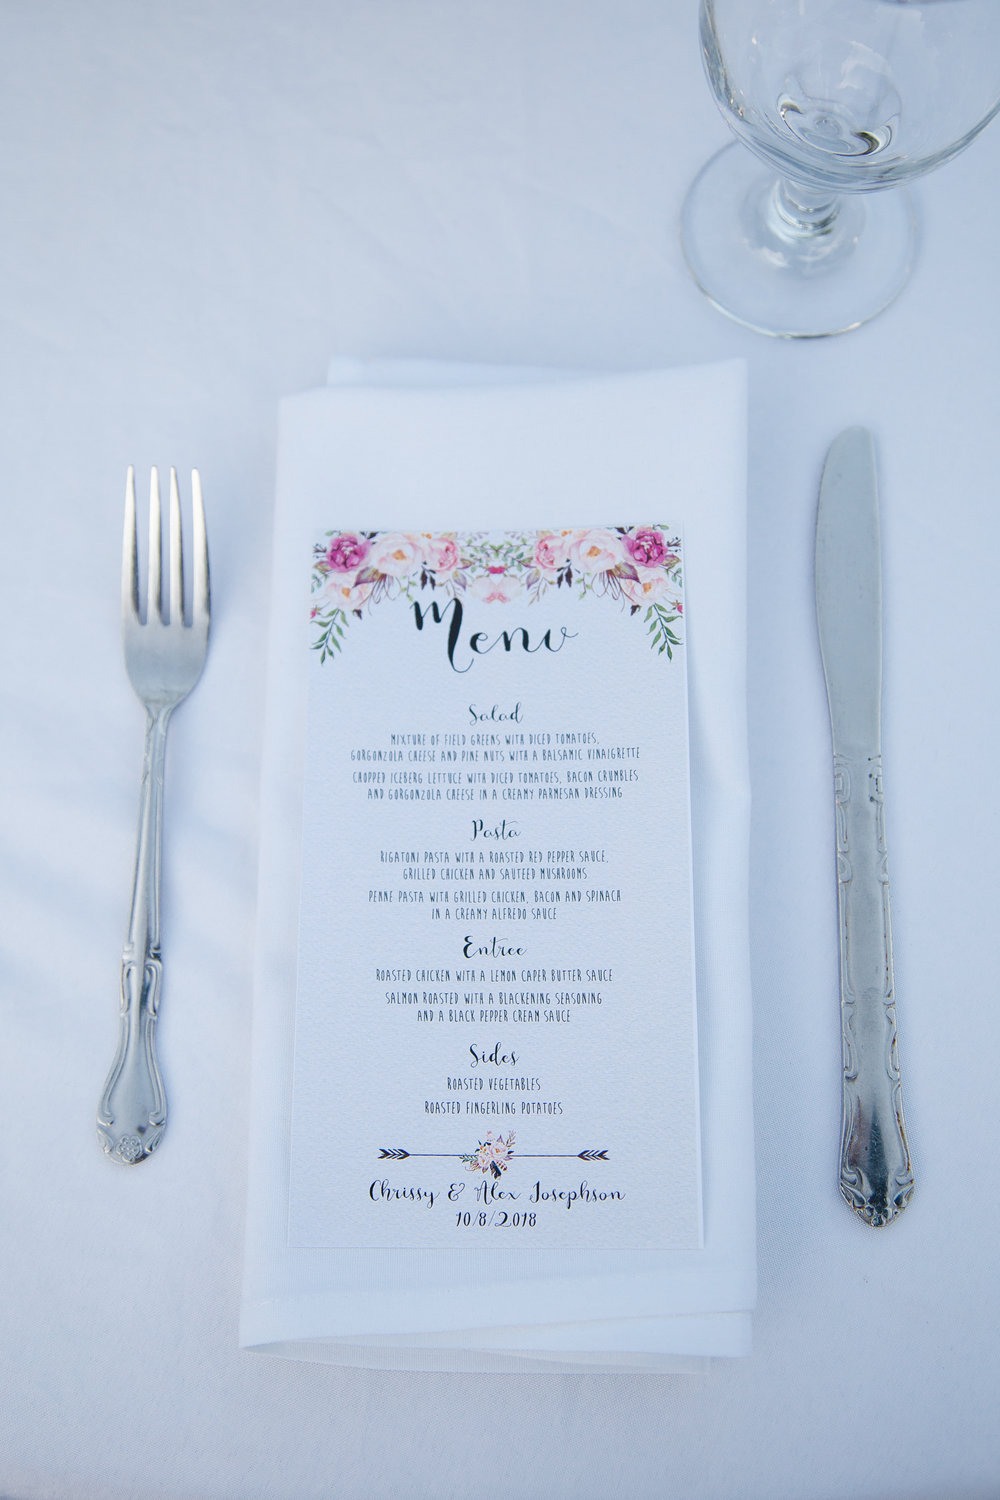 Wedding reception details at Chateau de Vie